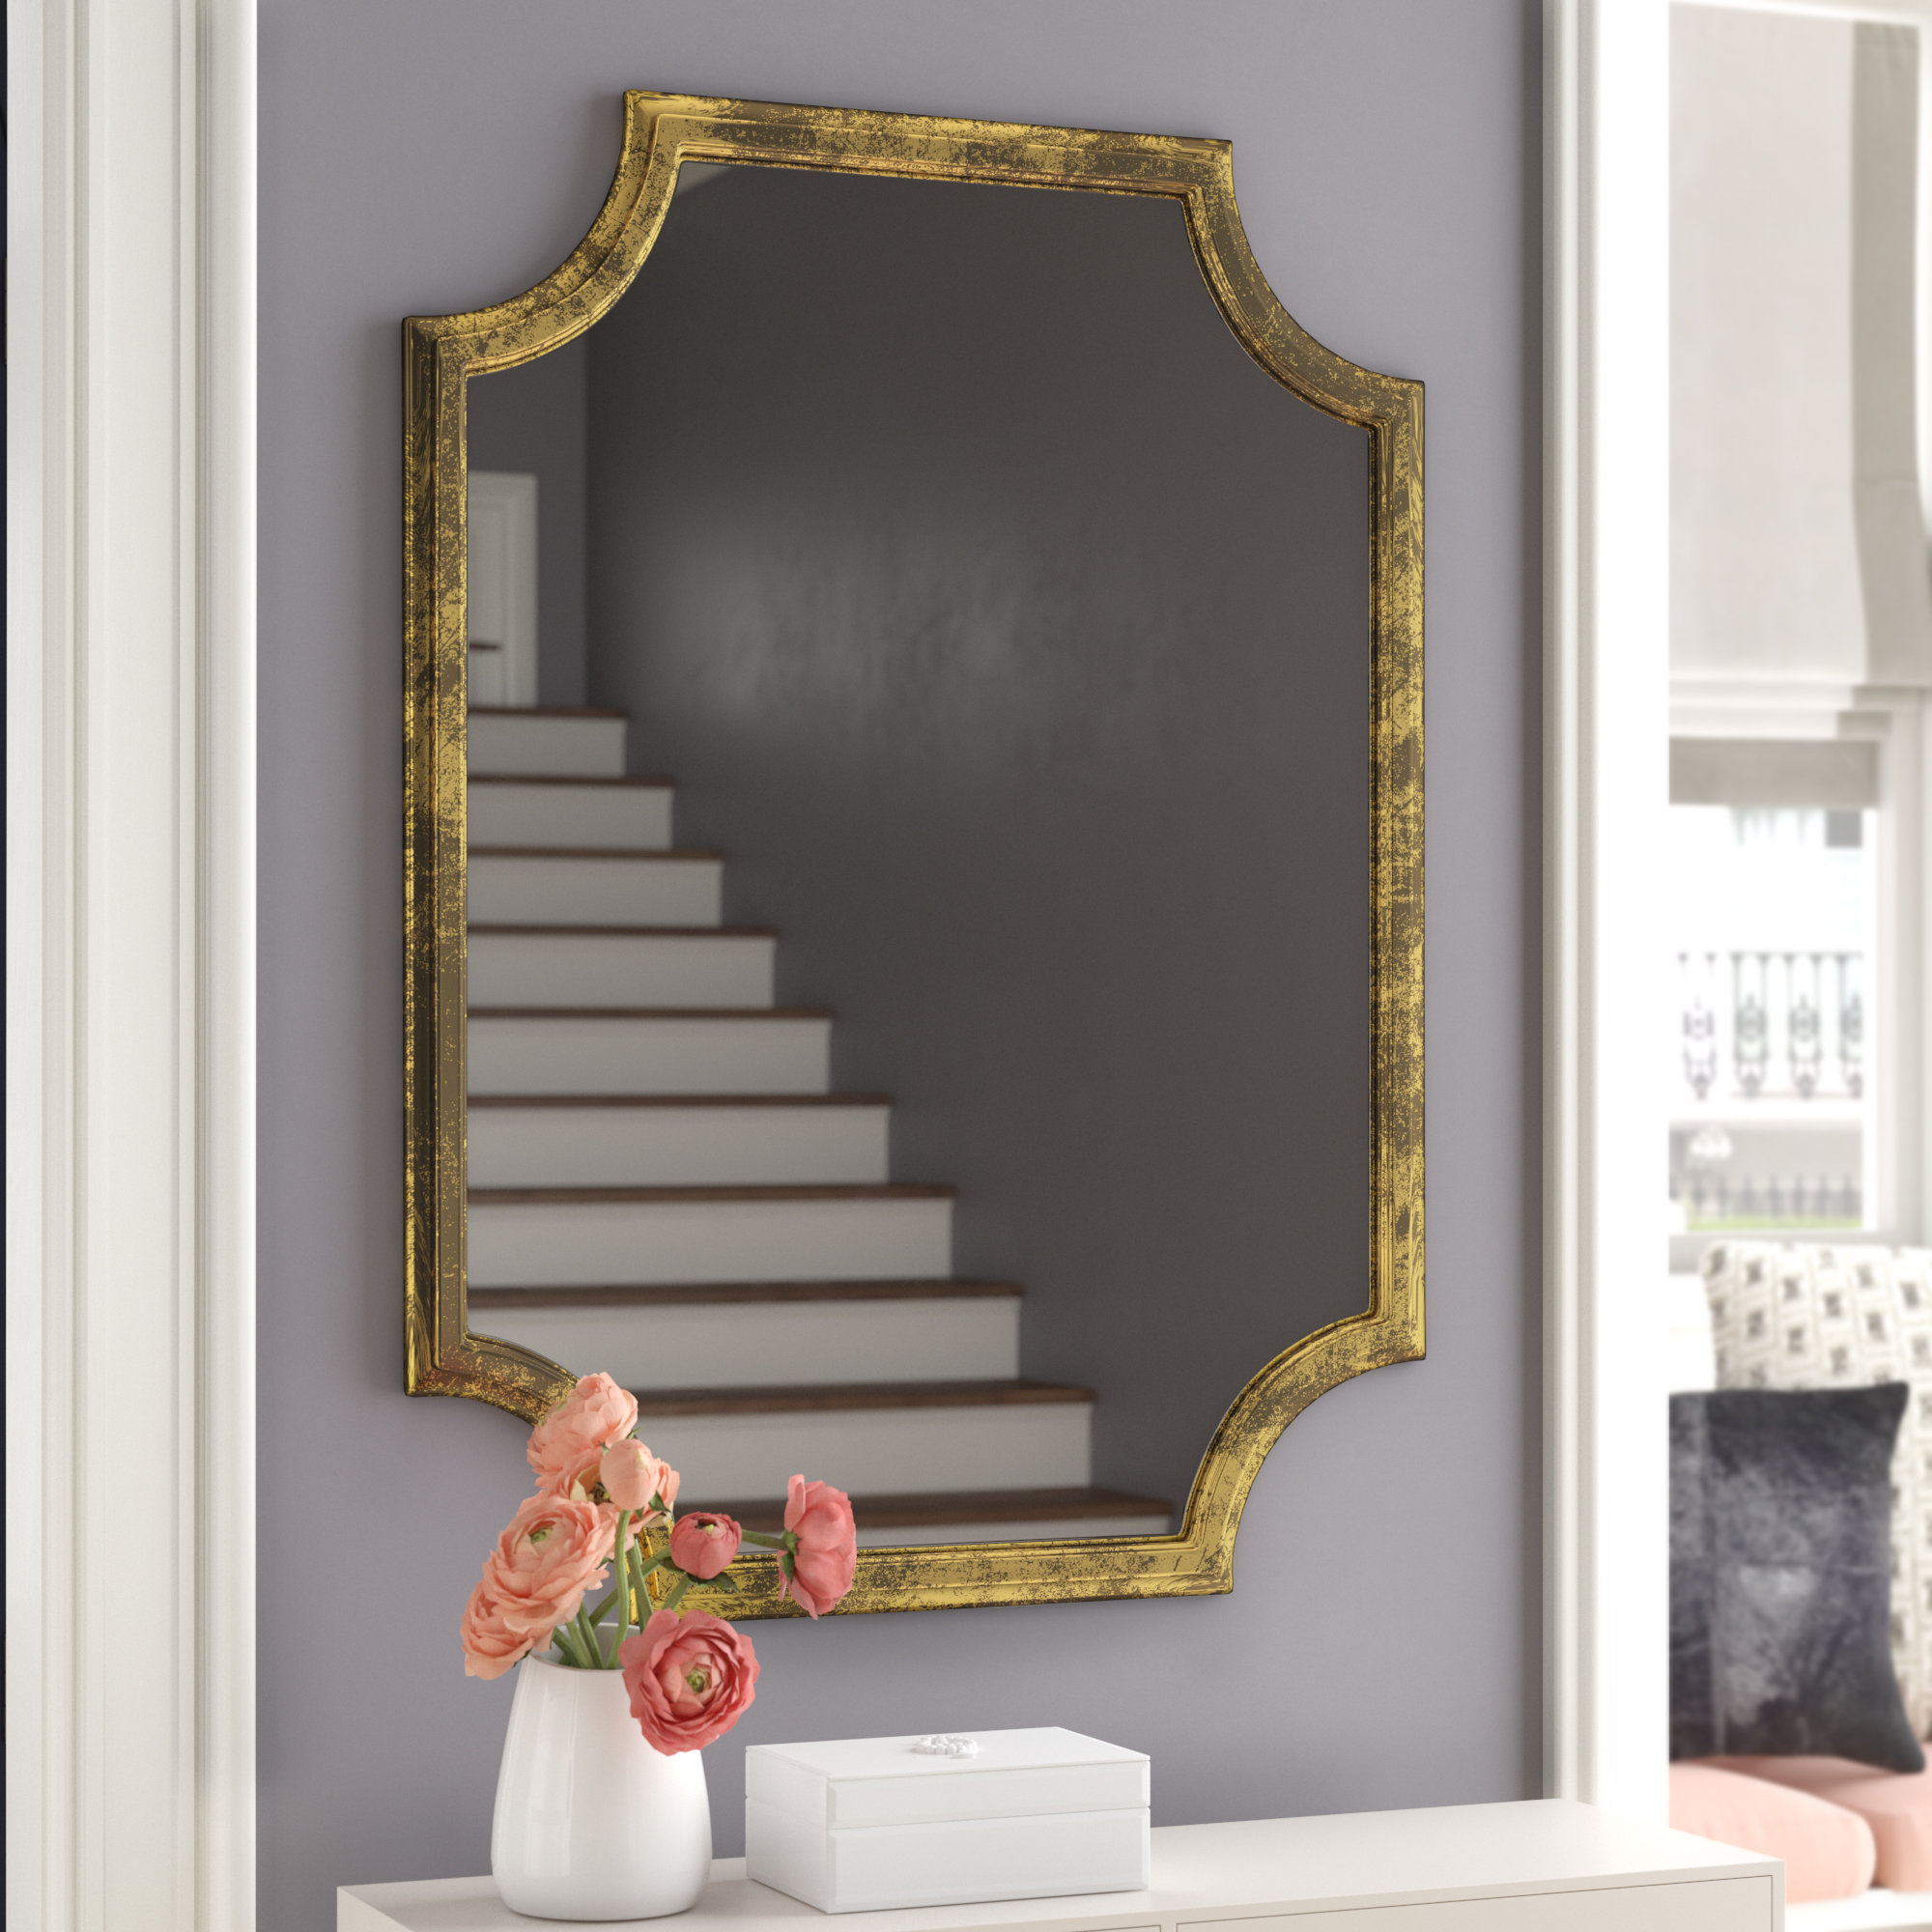 Danica Metallic Accent Traditional Wall Mirror With Reba Accent Wall Mirrors (View 4 of 20)